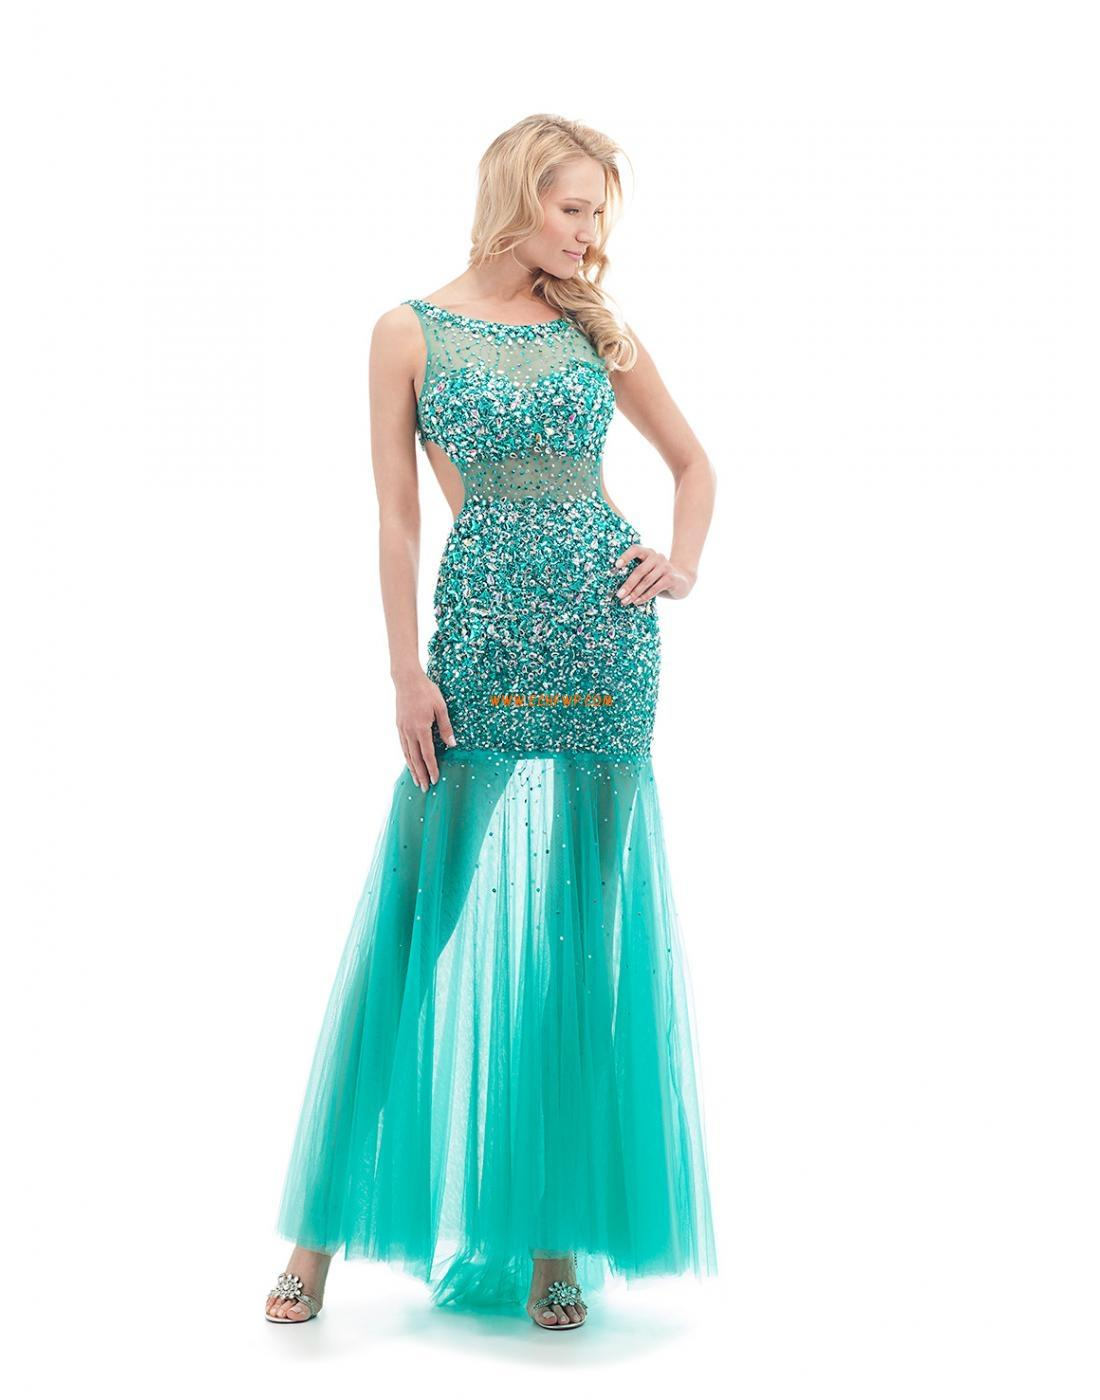 Evening Wear - Page 167 of 498 - Pregnant Evening Dresses